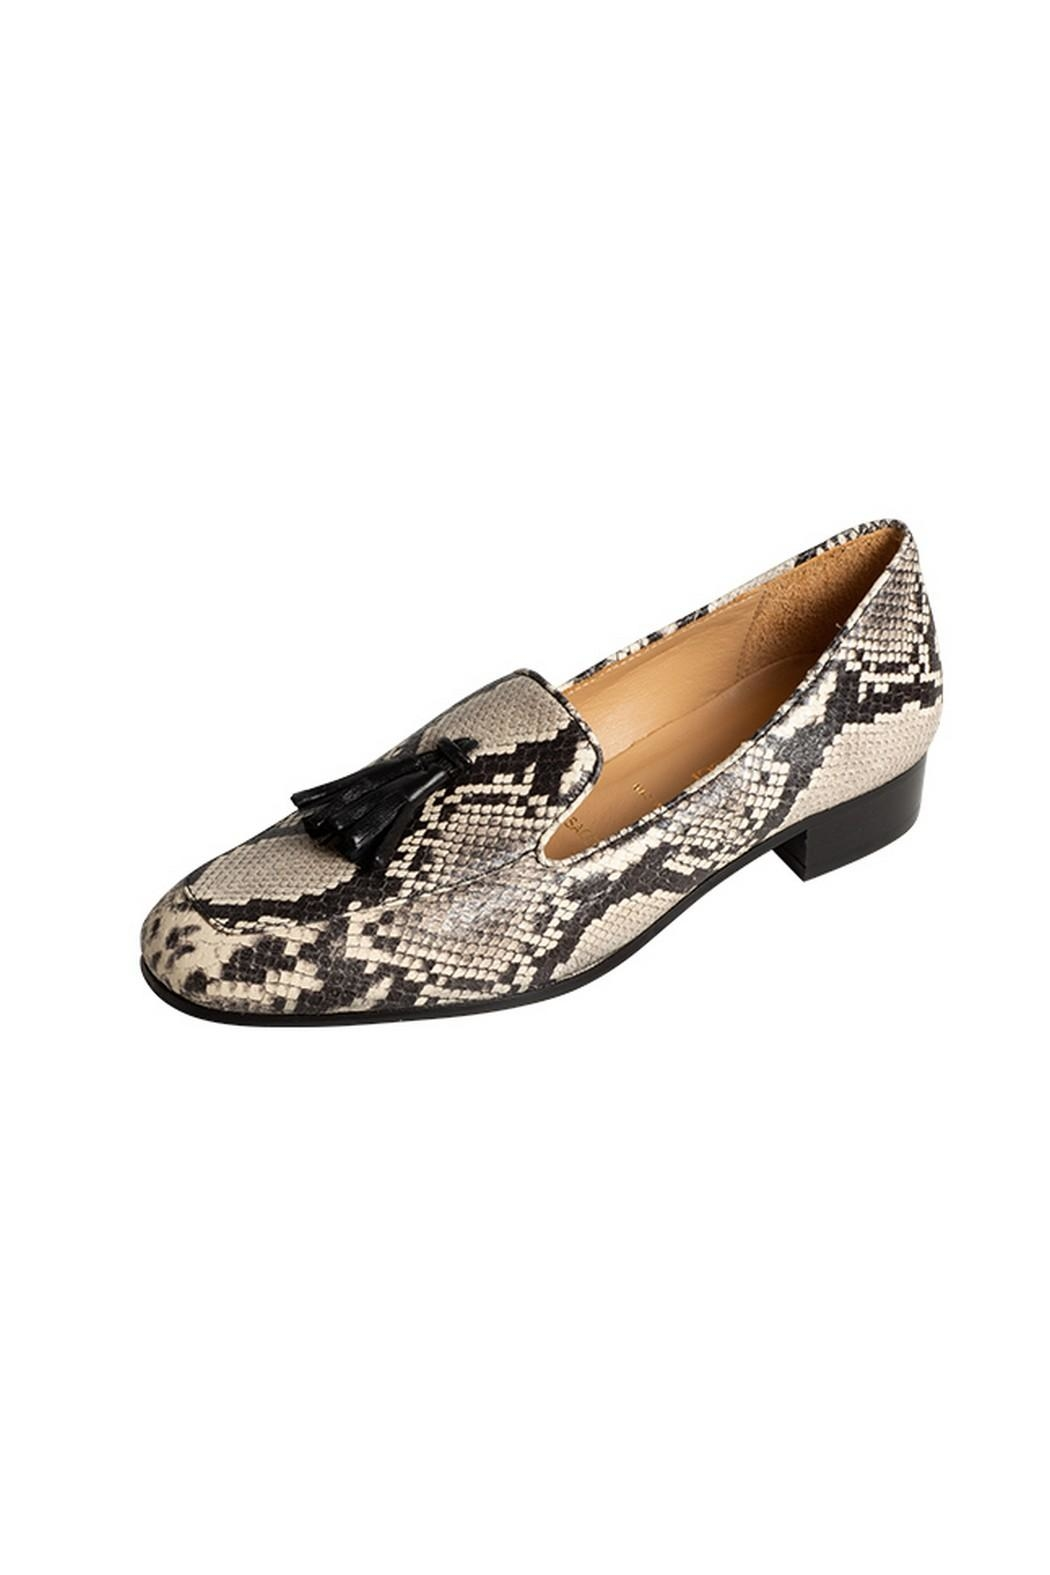 Pascucci Snakeskin Leather Loafers - Front Full Image